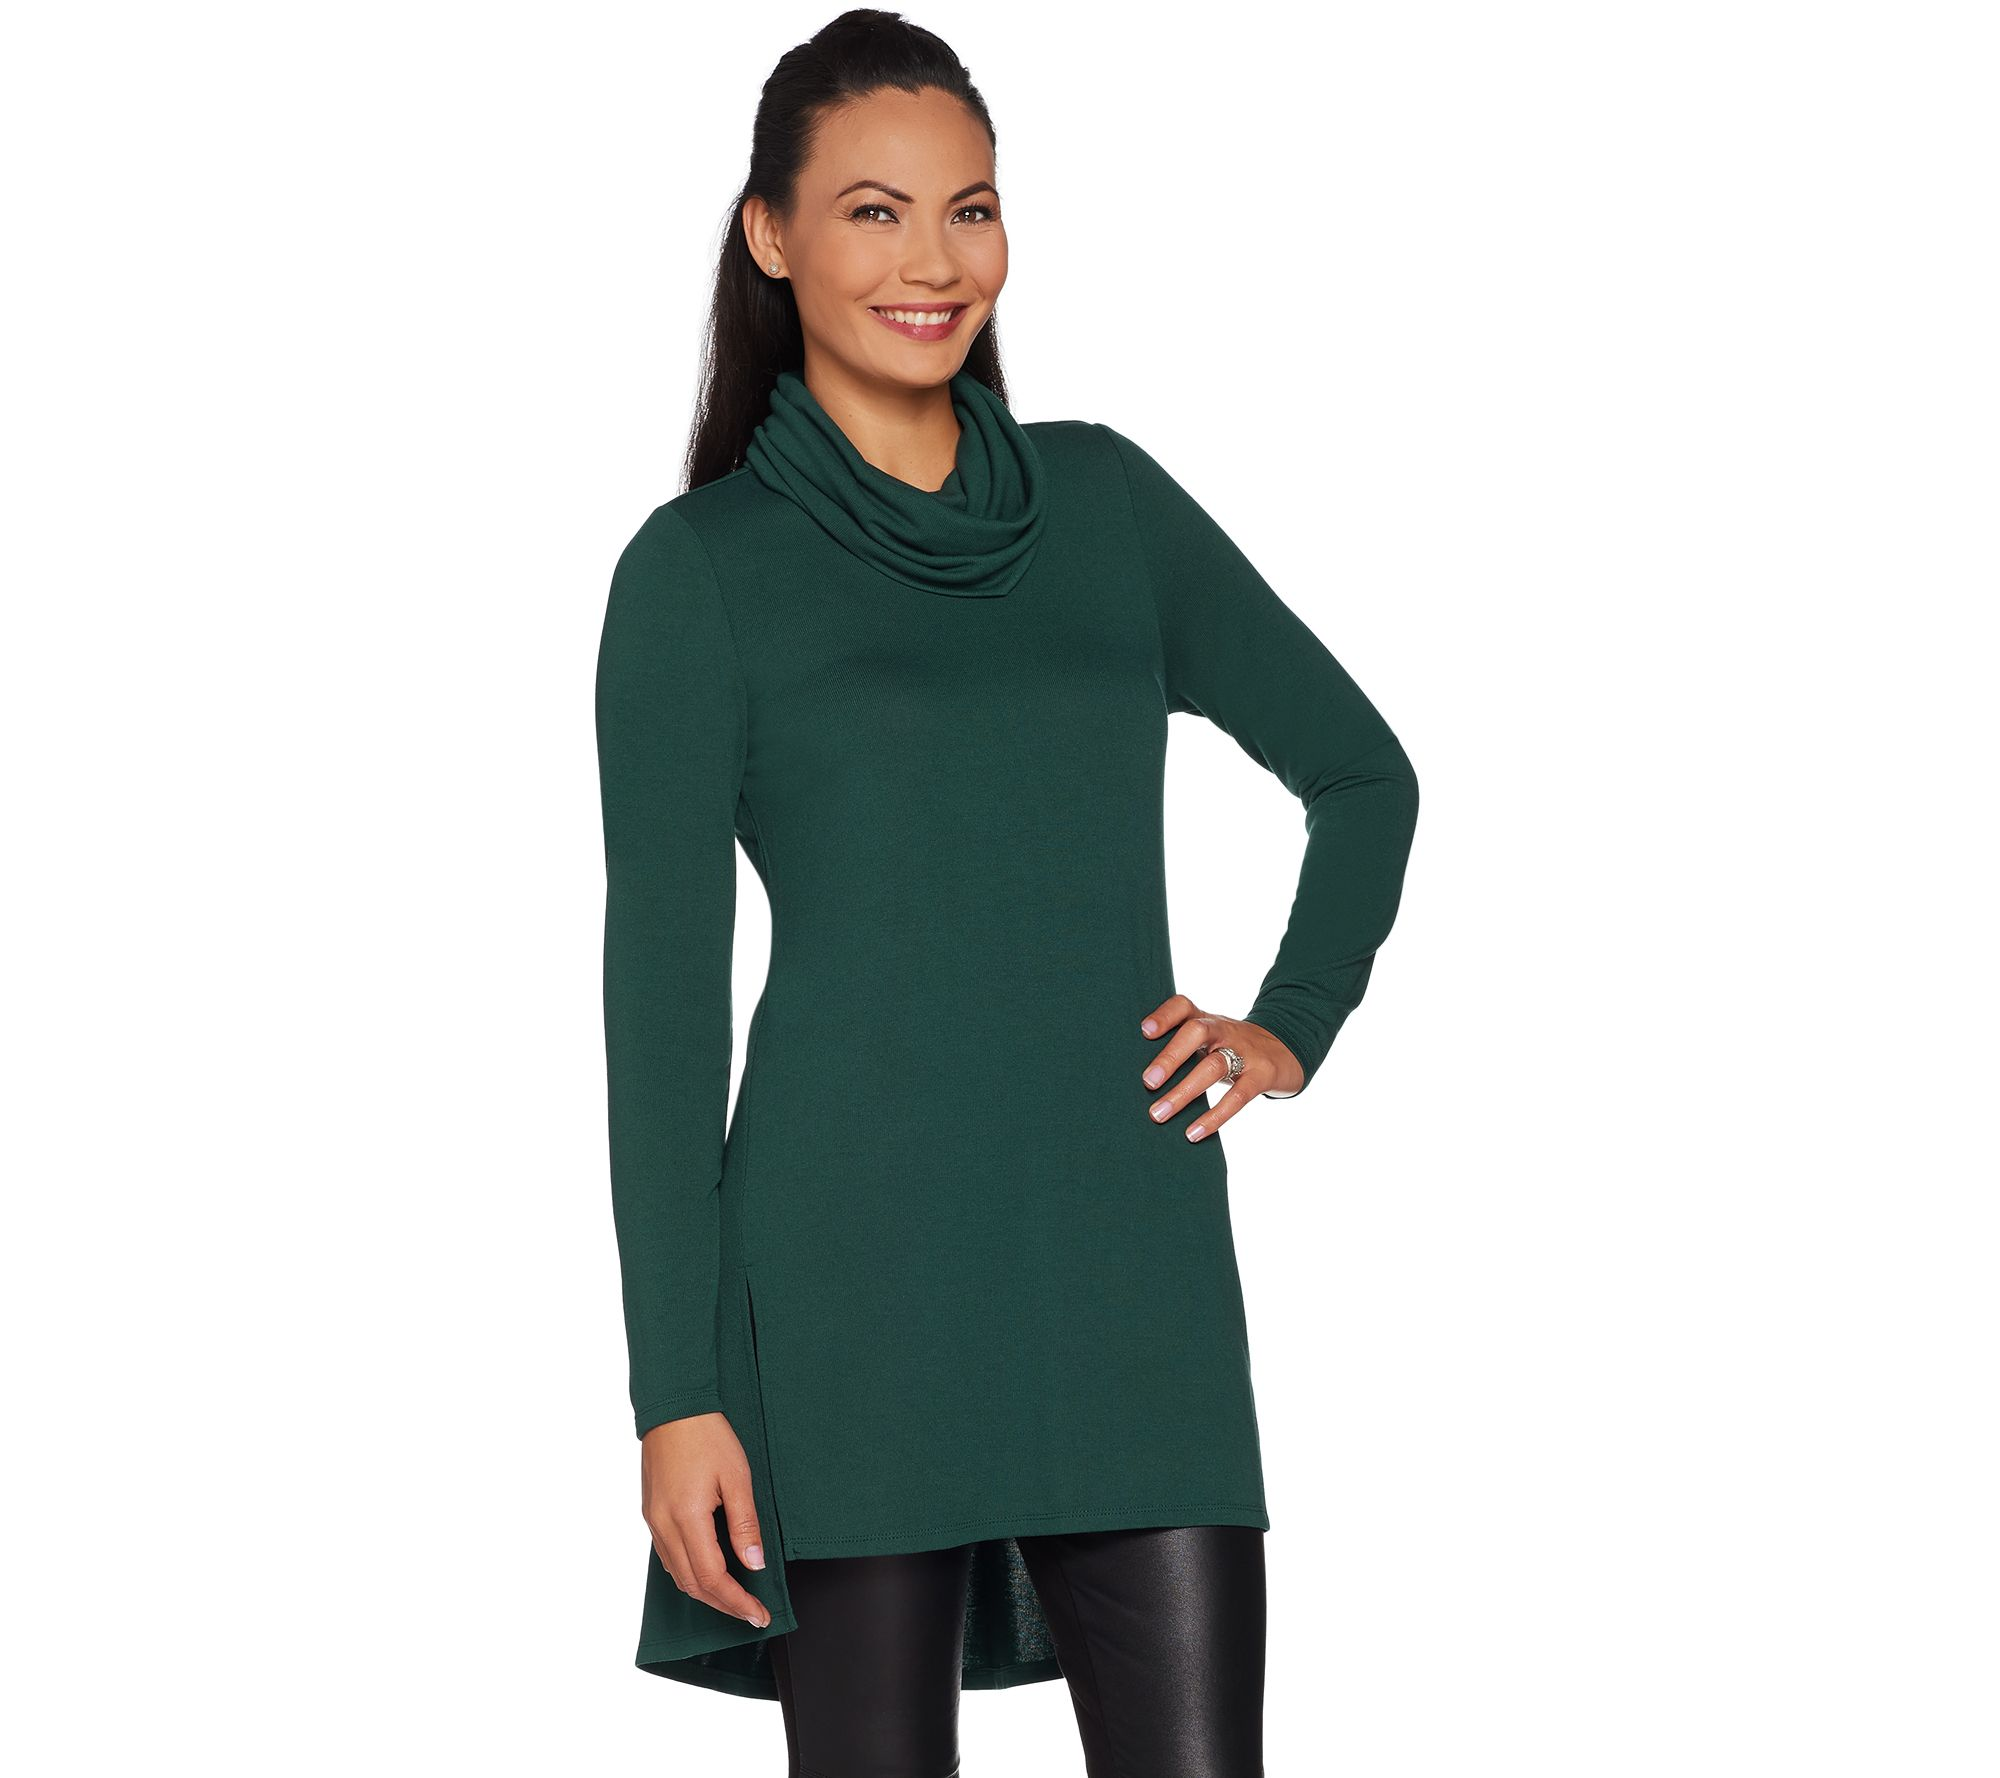 Cowl Neckline: (QVC) Lisa Rinna Collection Cowl Neck Tunic With Seam